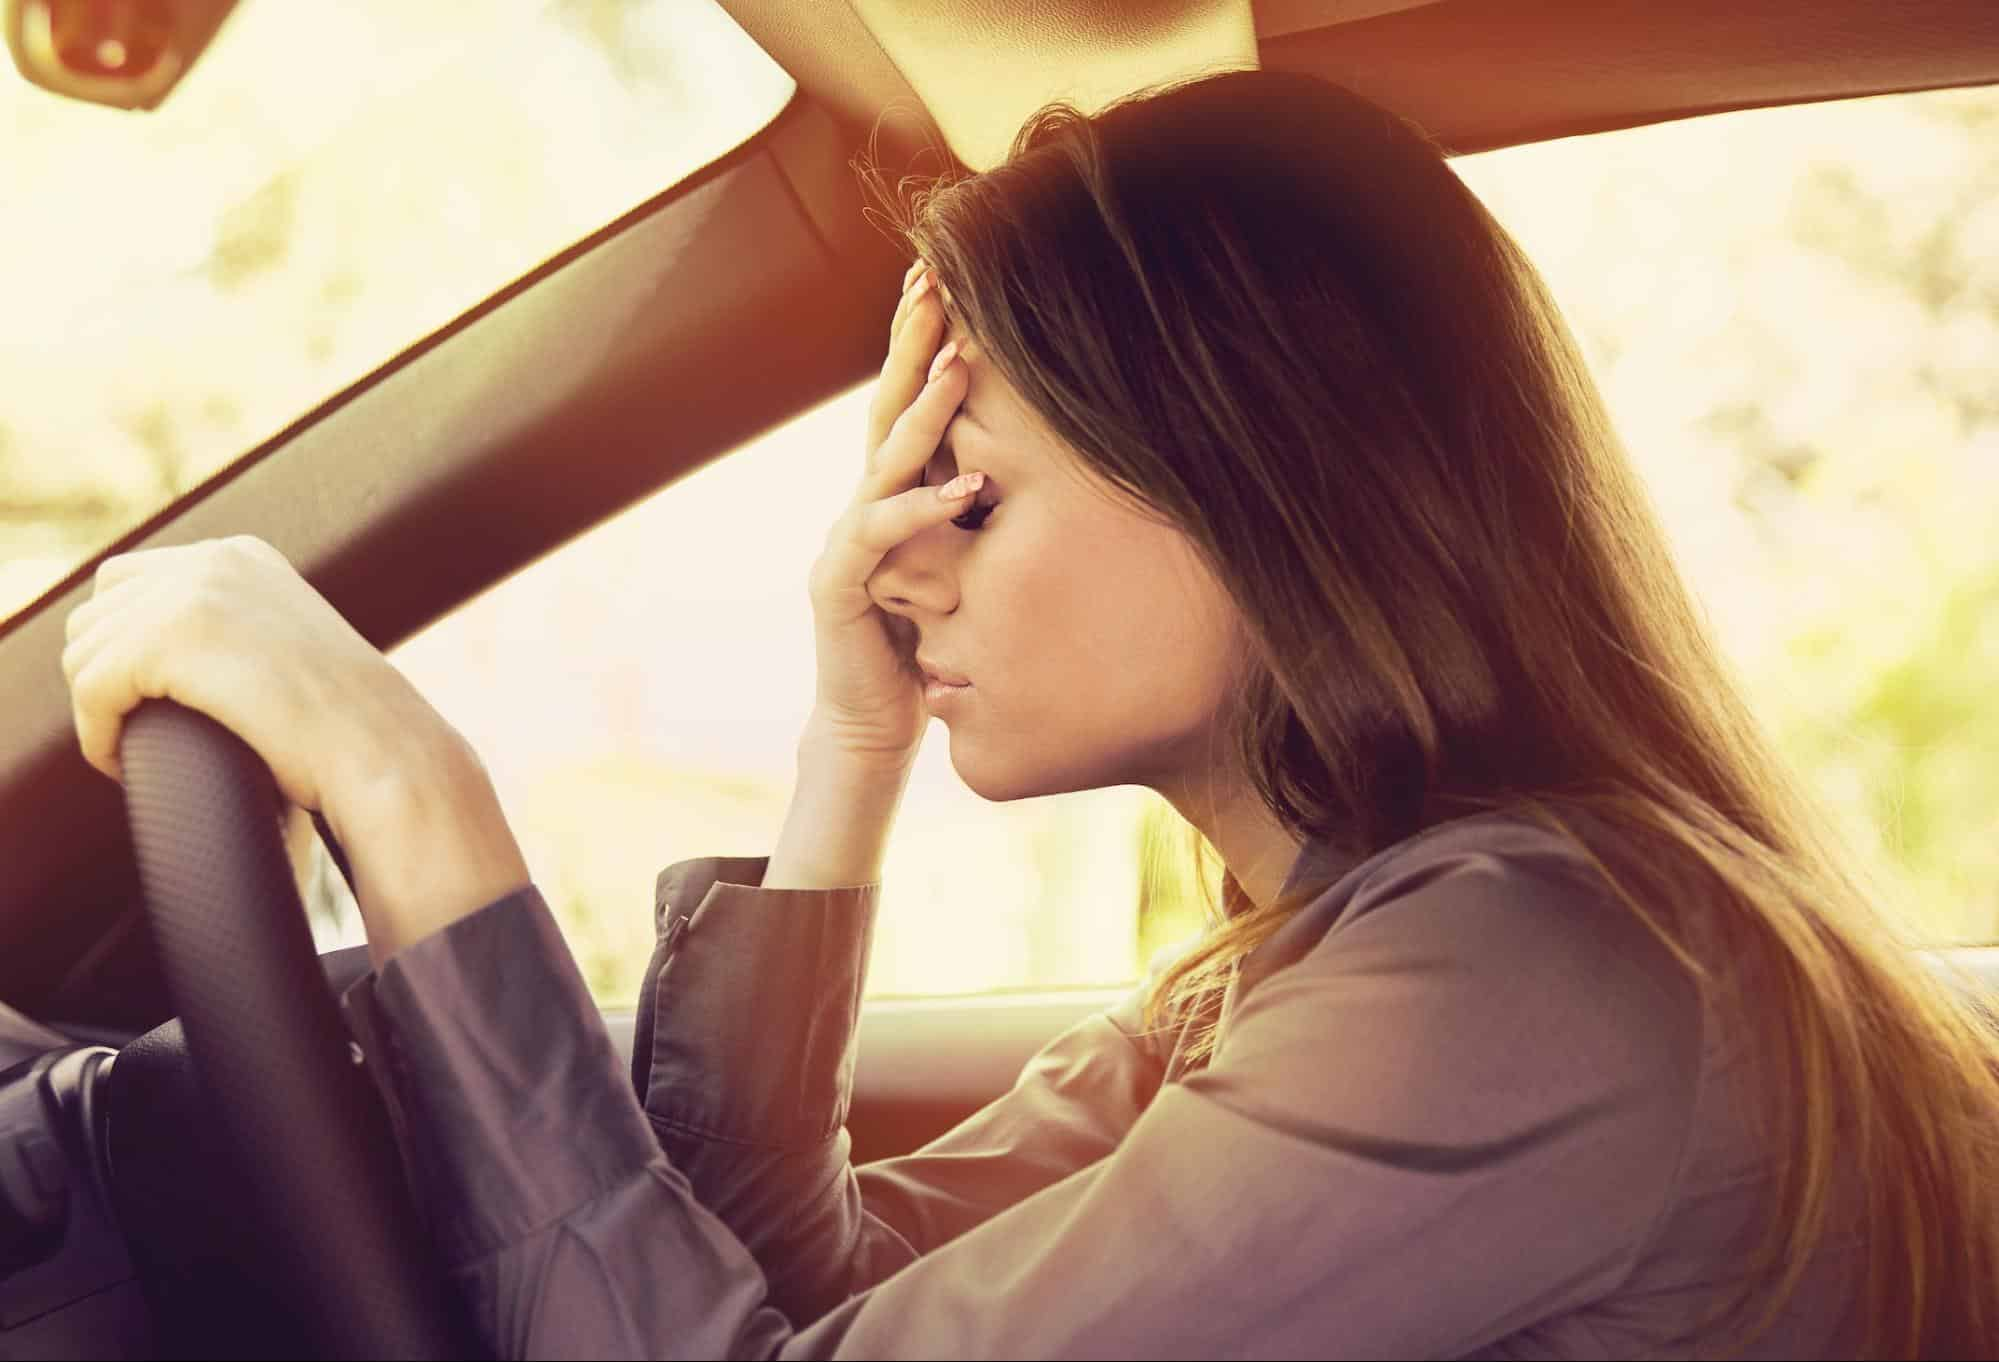 What Are The Symptoms Of PTSD After An Accident?